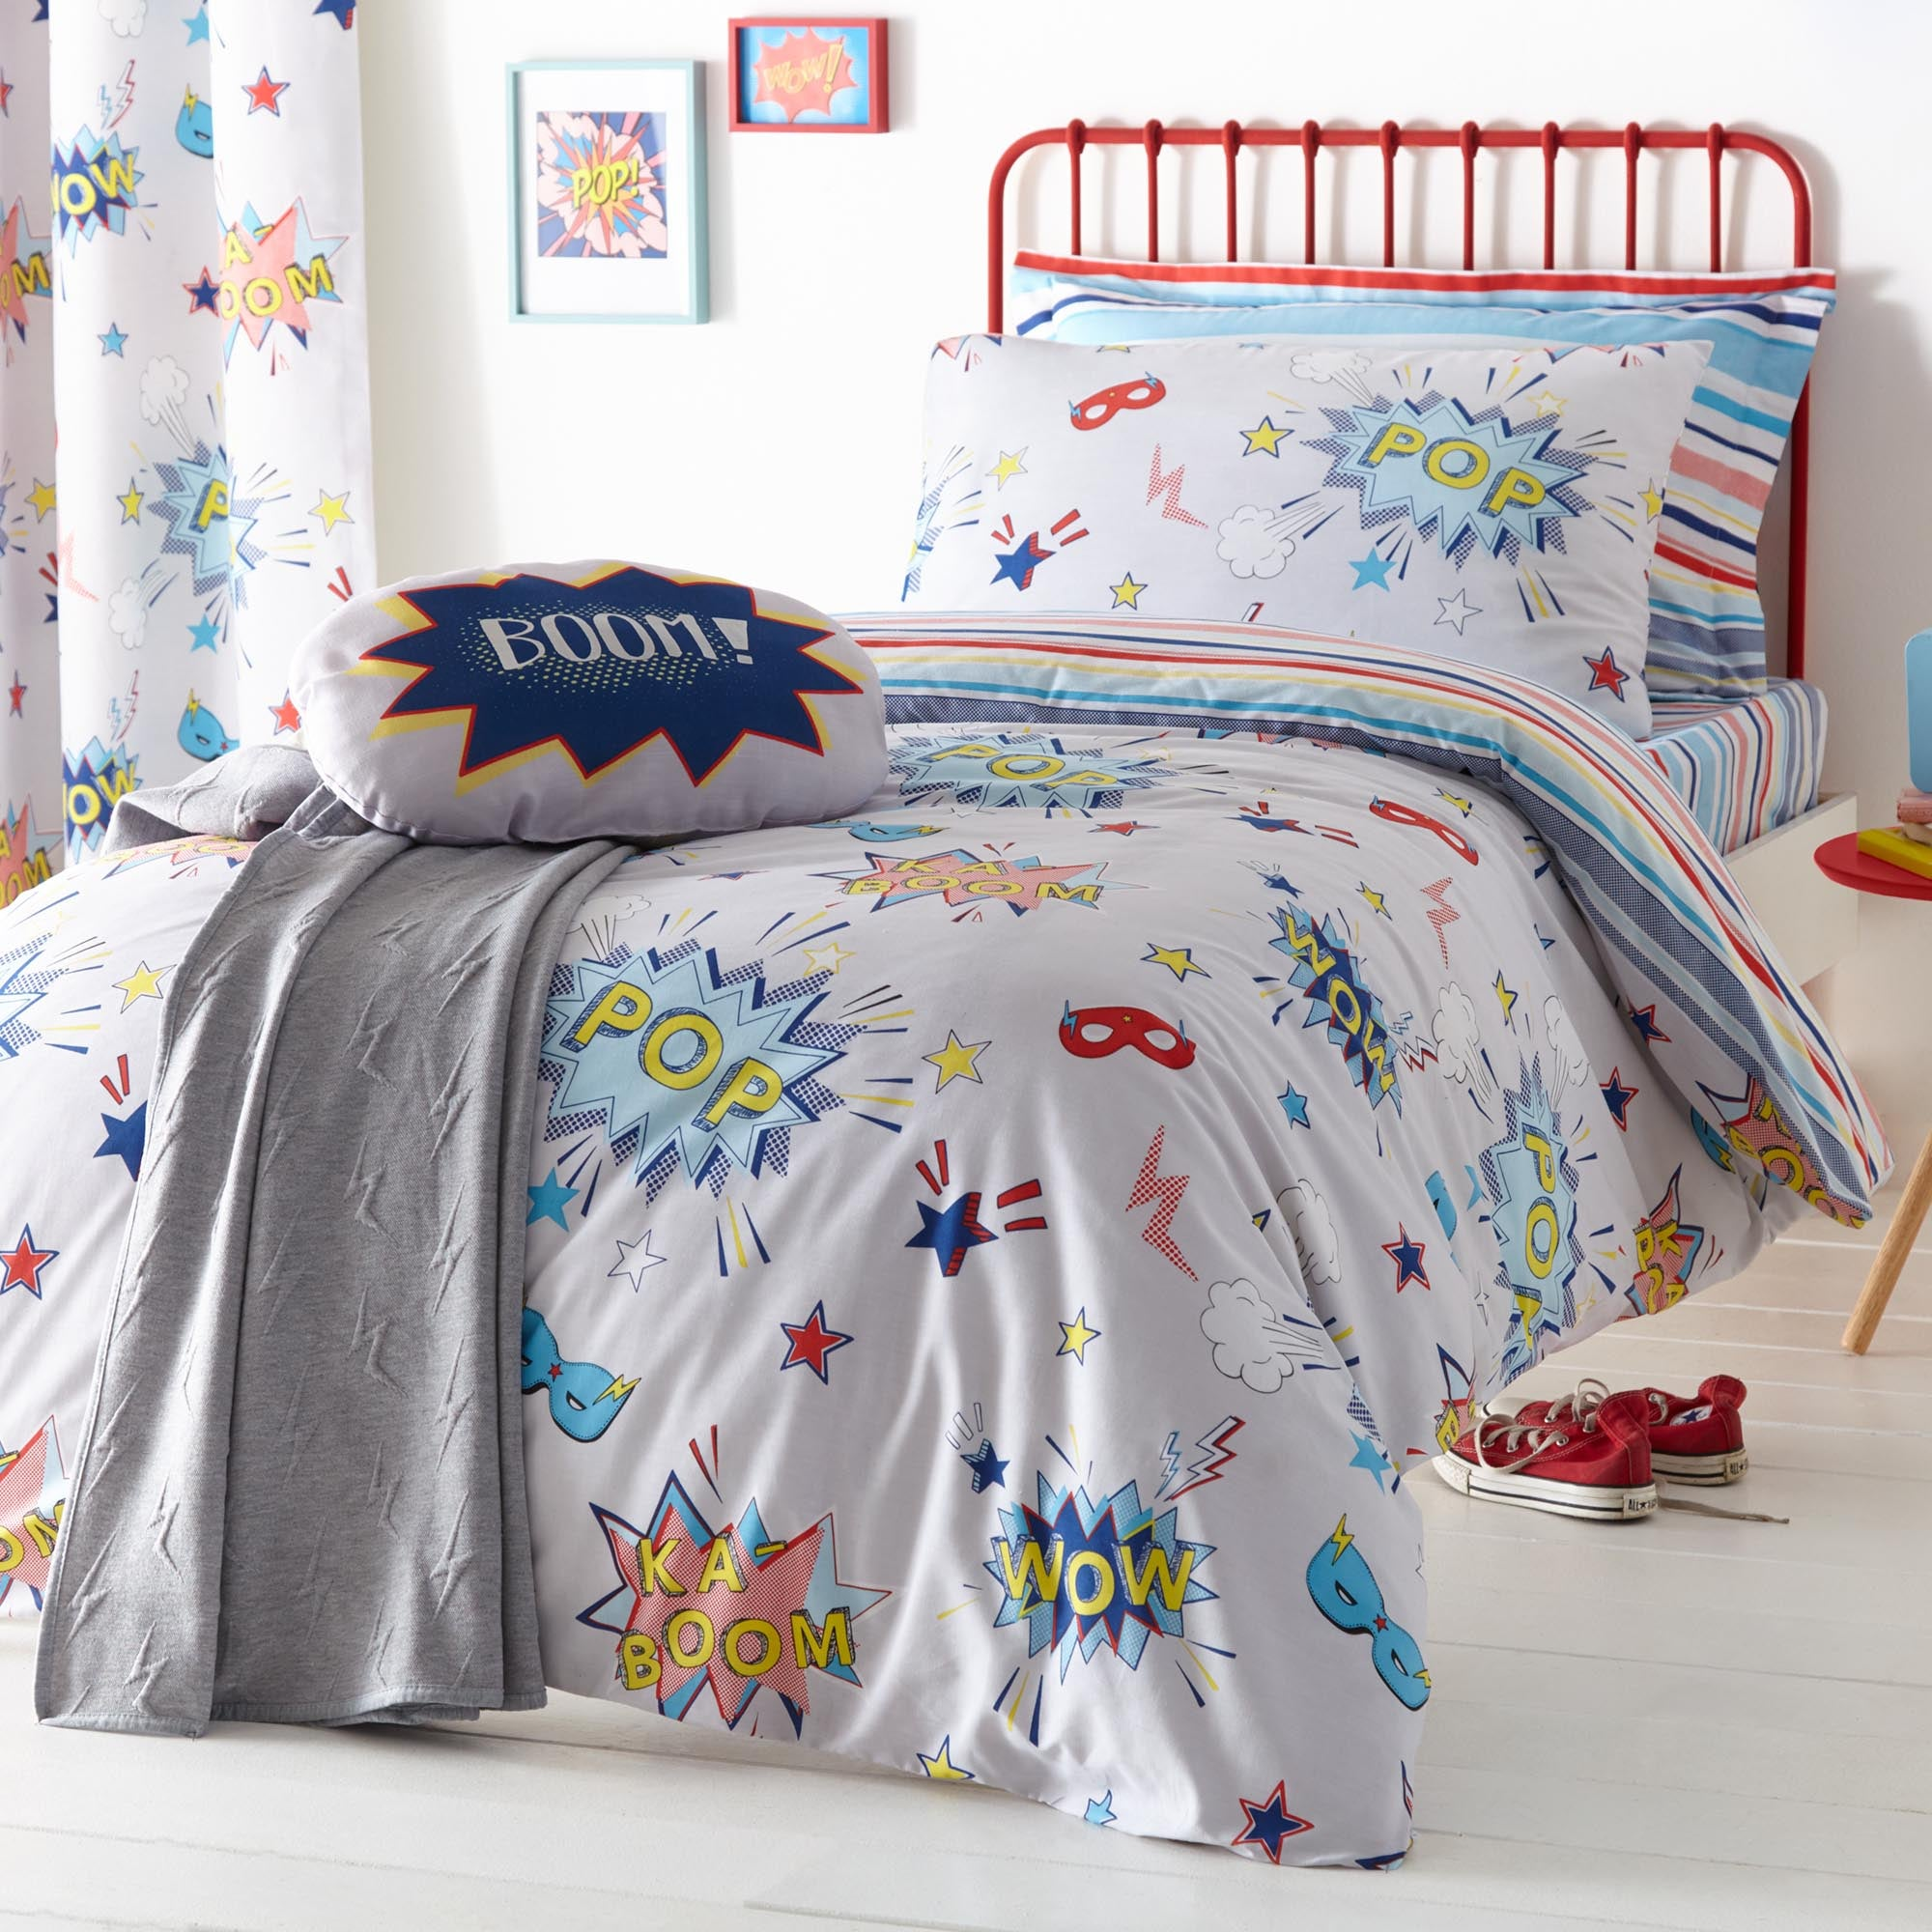 Superpop Blue Bed Linen Collection